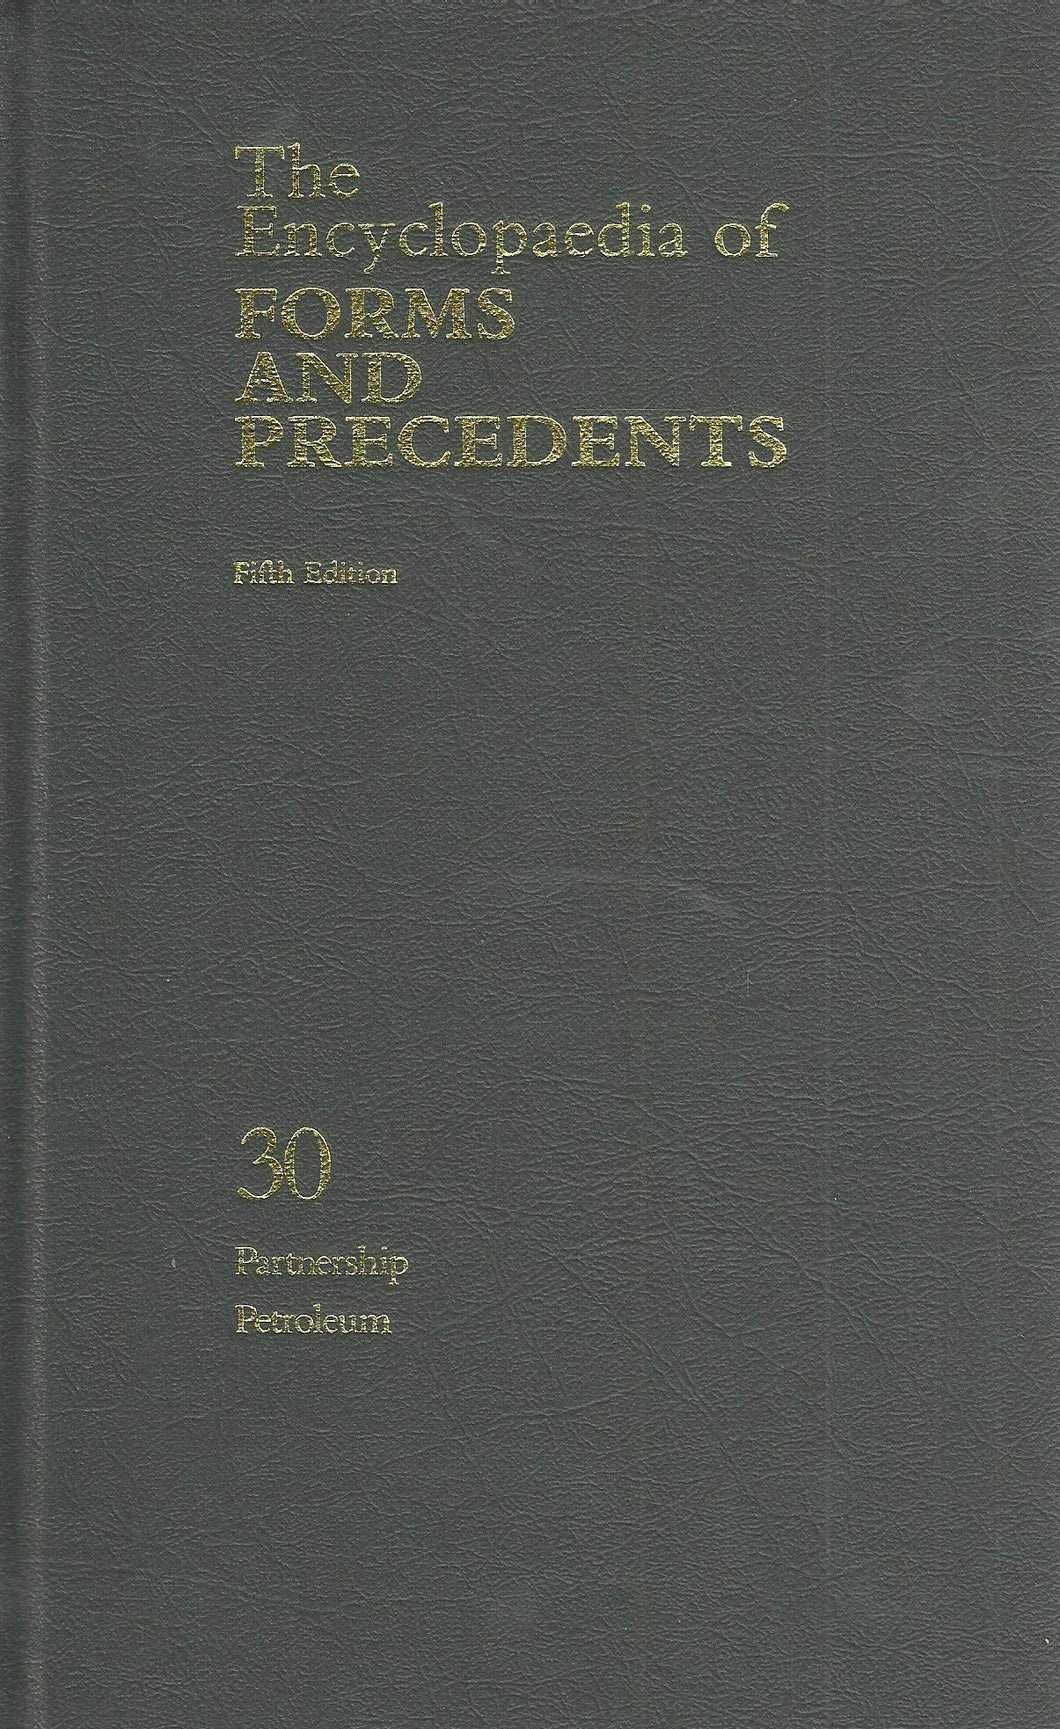 The Encyclopaedia of Forms and Precedents - Fifth Edition, 30: Partnership, Petroleum